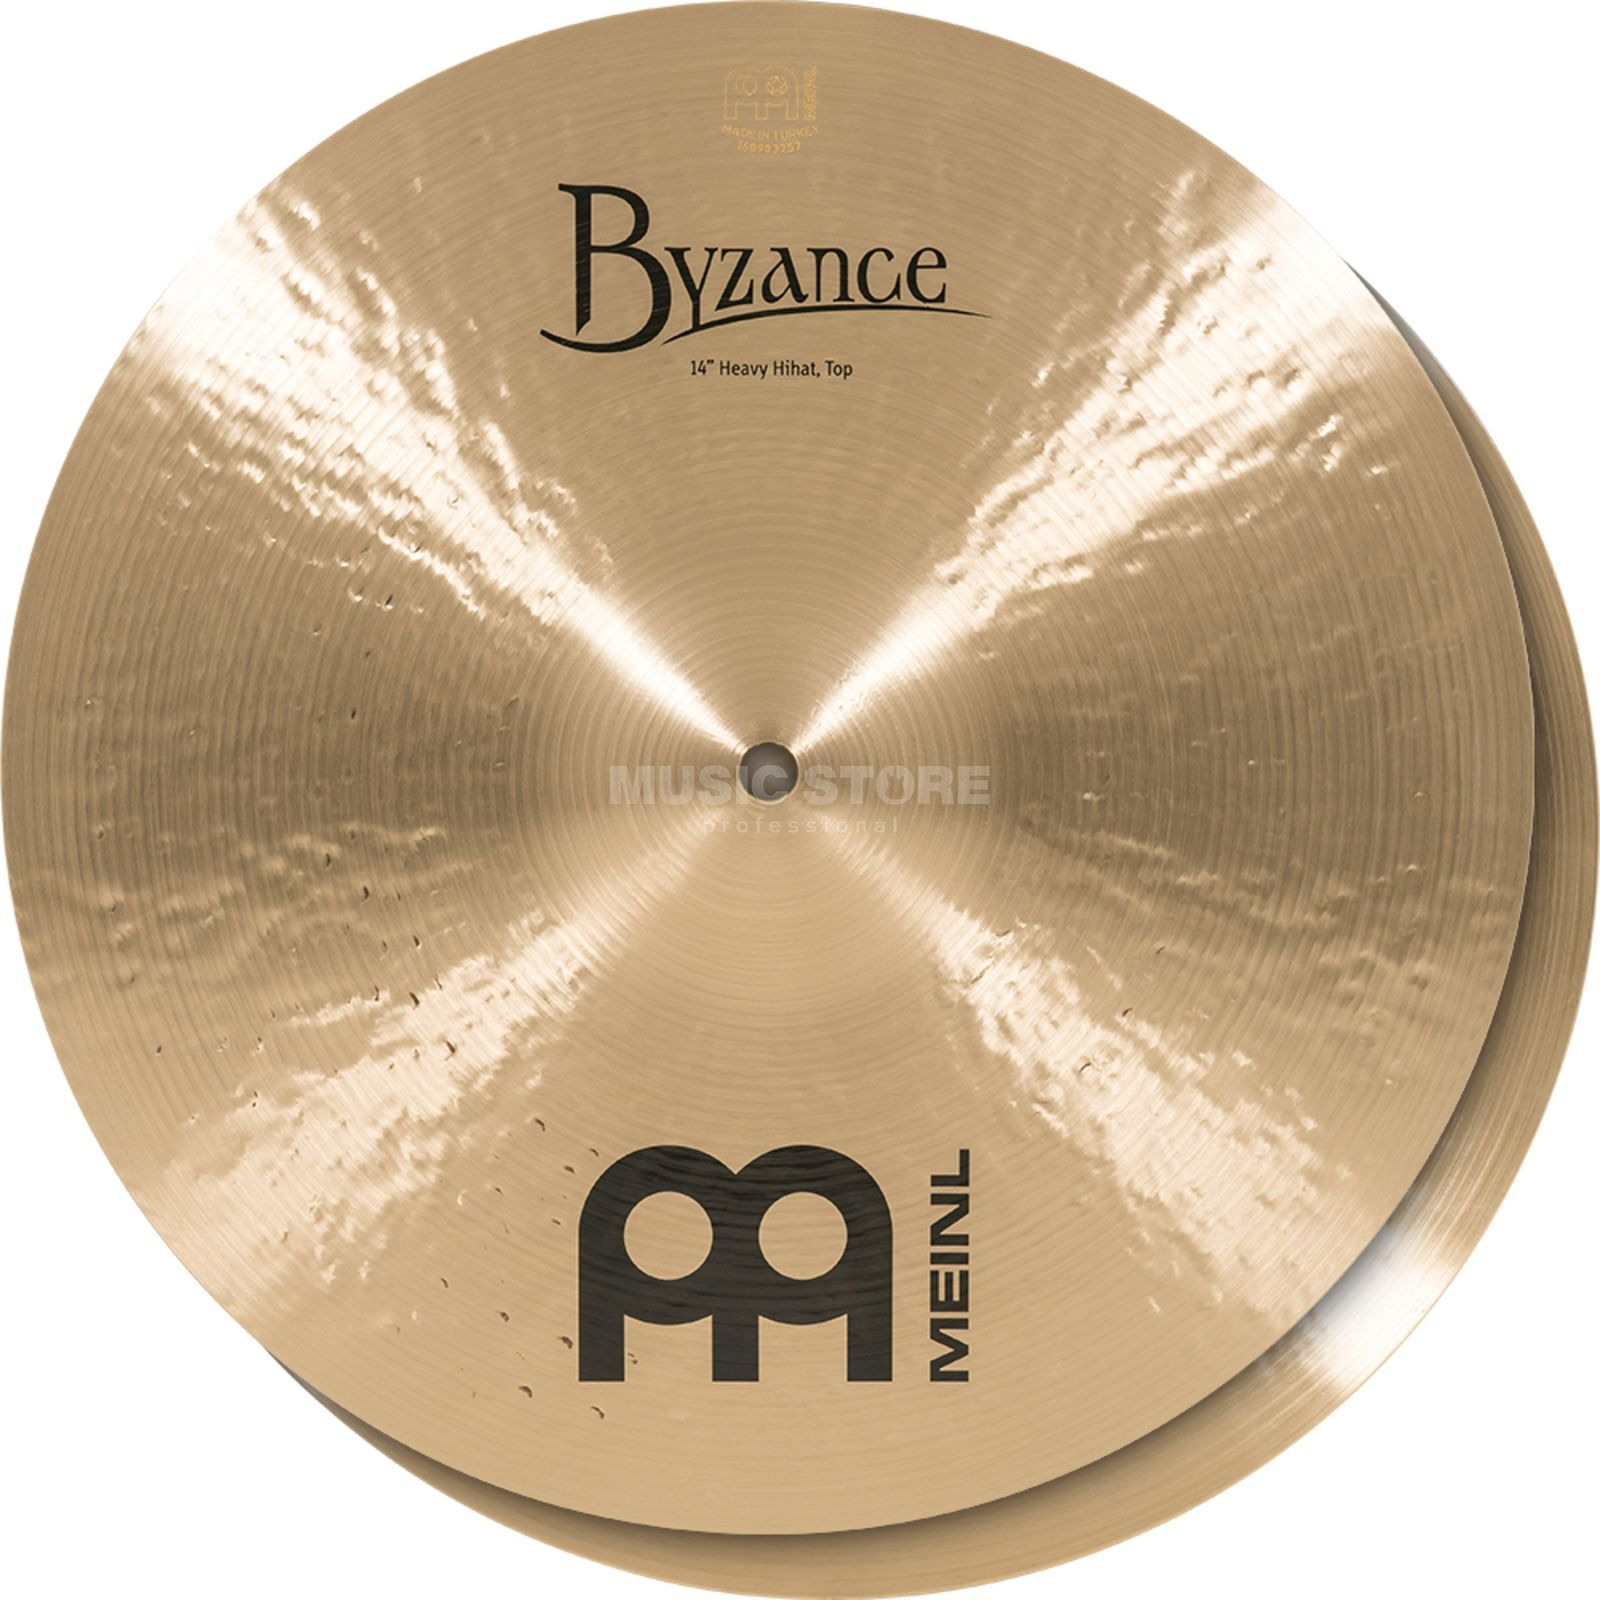 "Meinl Byzance Heavy HiHat 14"", B14HH, Traditional Finish Produktbillede"